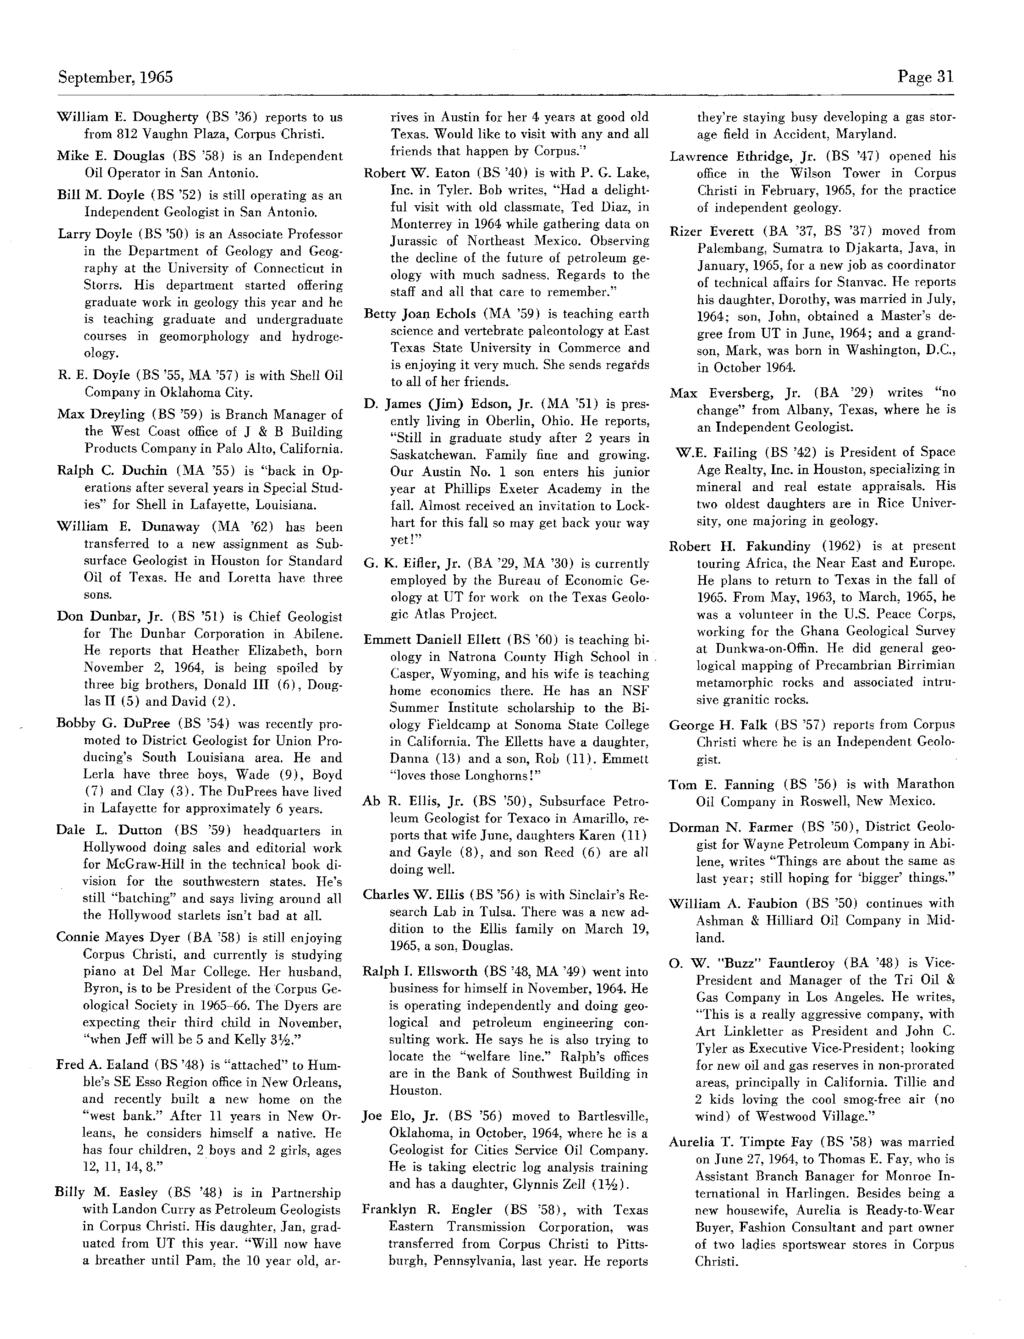 September,1965 Page 31 William E. Dougherty (BS '36) reports to us from 812 Vaughn Plaza, Corpus Christi. Mike E. Douglas (BS '58) is an Independent Oil Operator in San Antonio. Bill M.